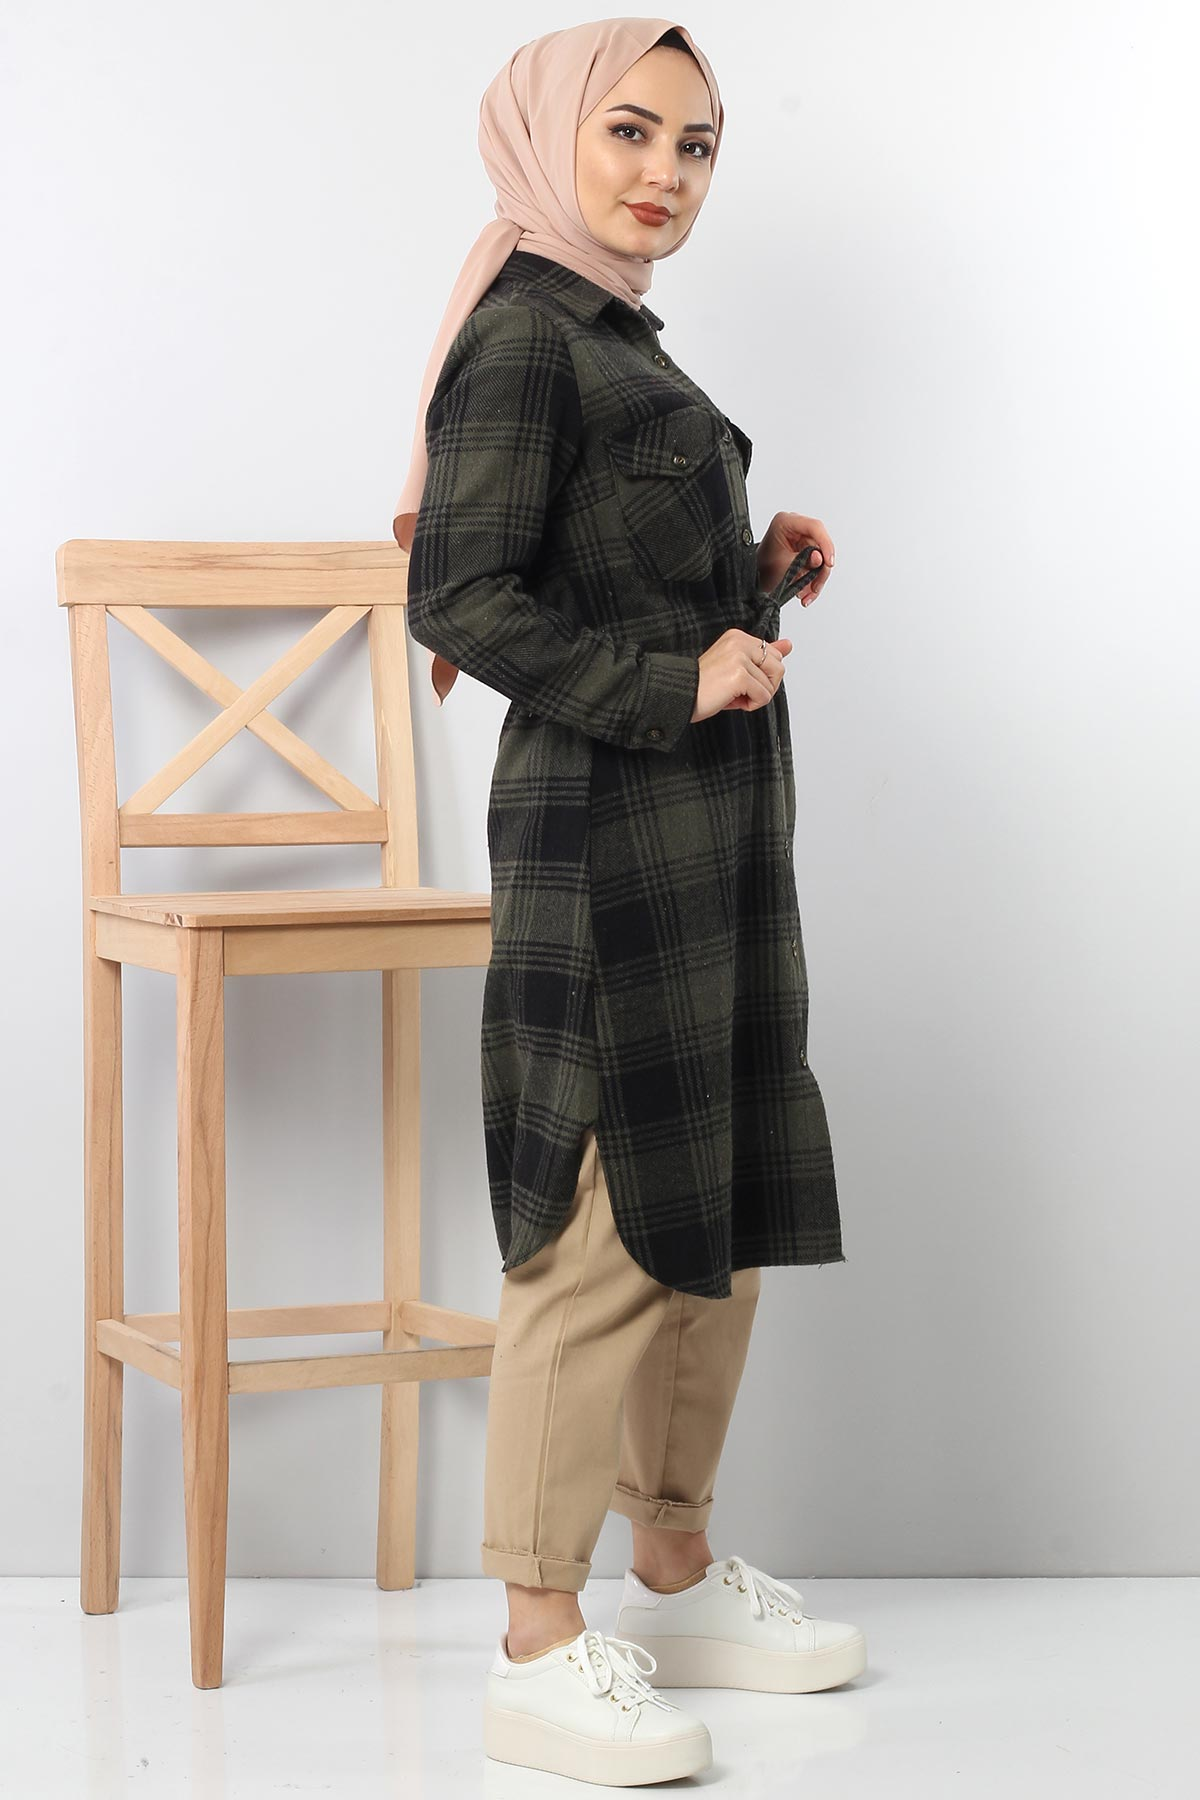 Tricot with neck tunic TSD6045 khaki color.